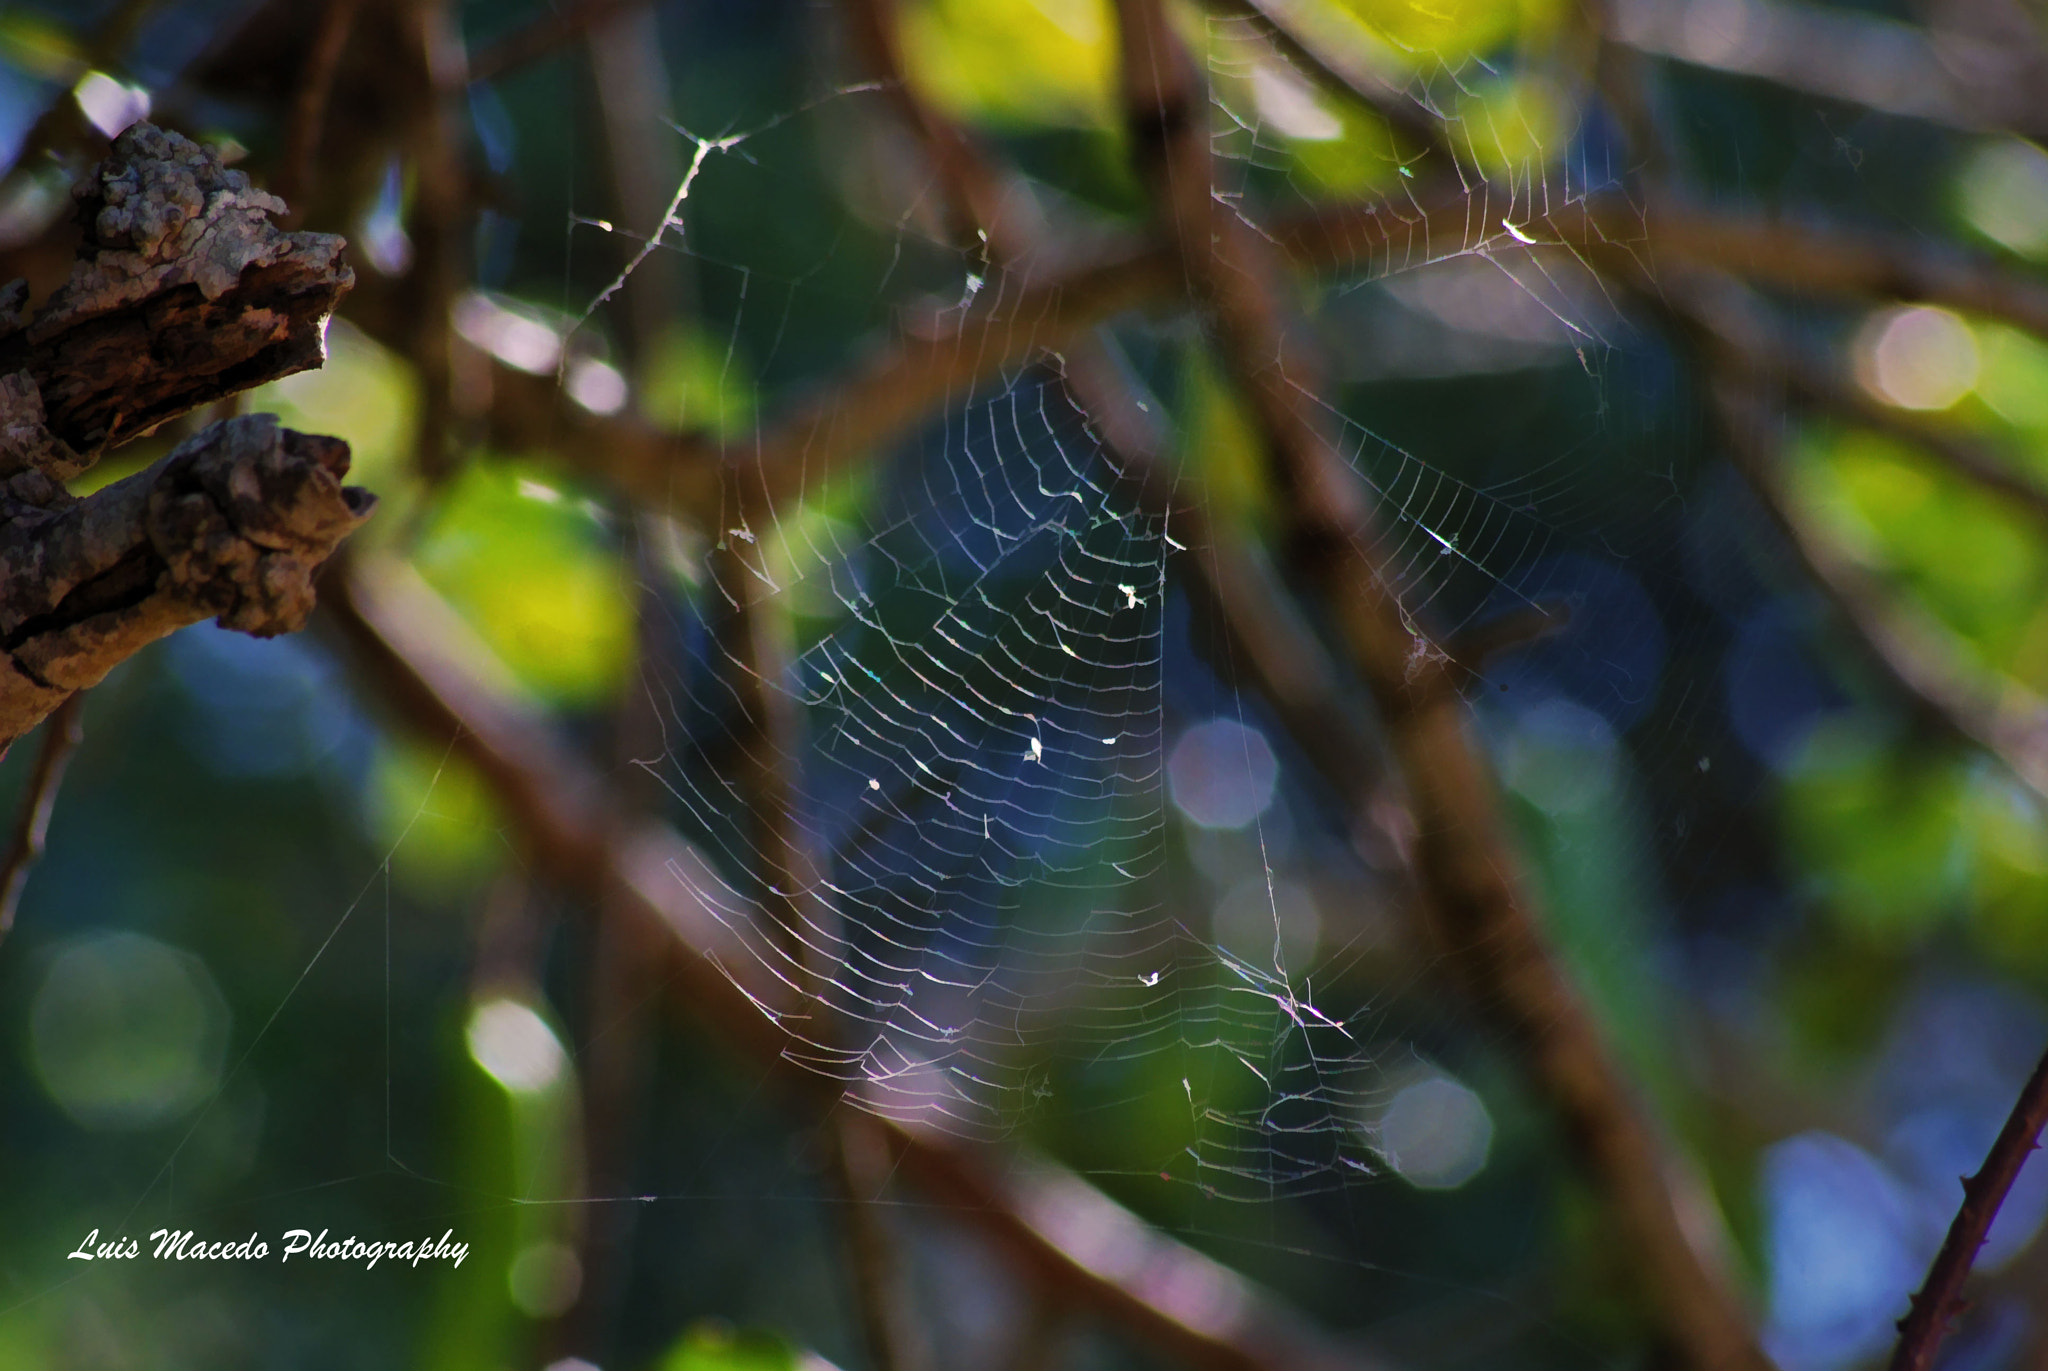 Photograph The Old Web by Luis Pereira on 500px